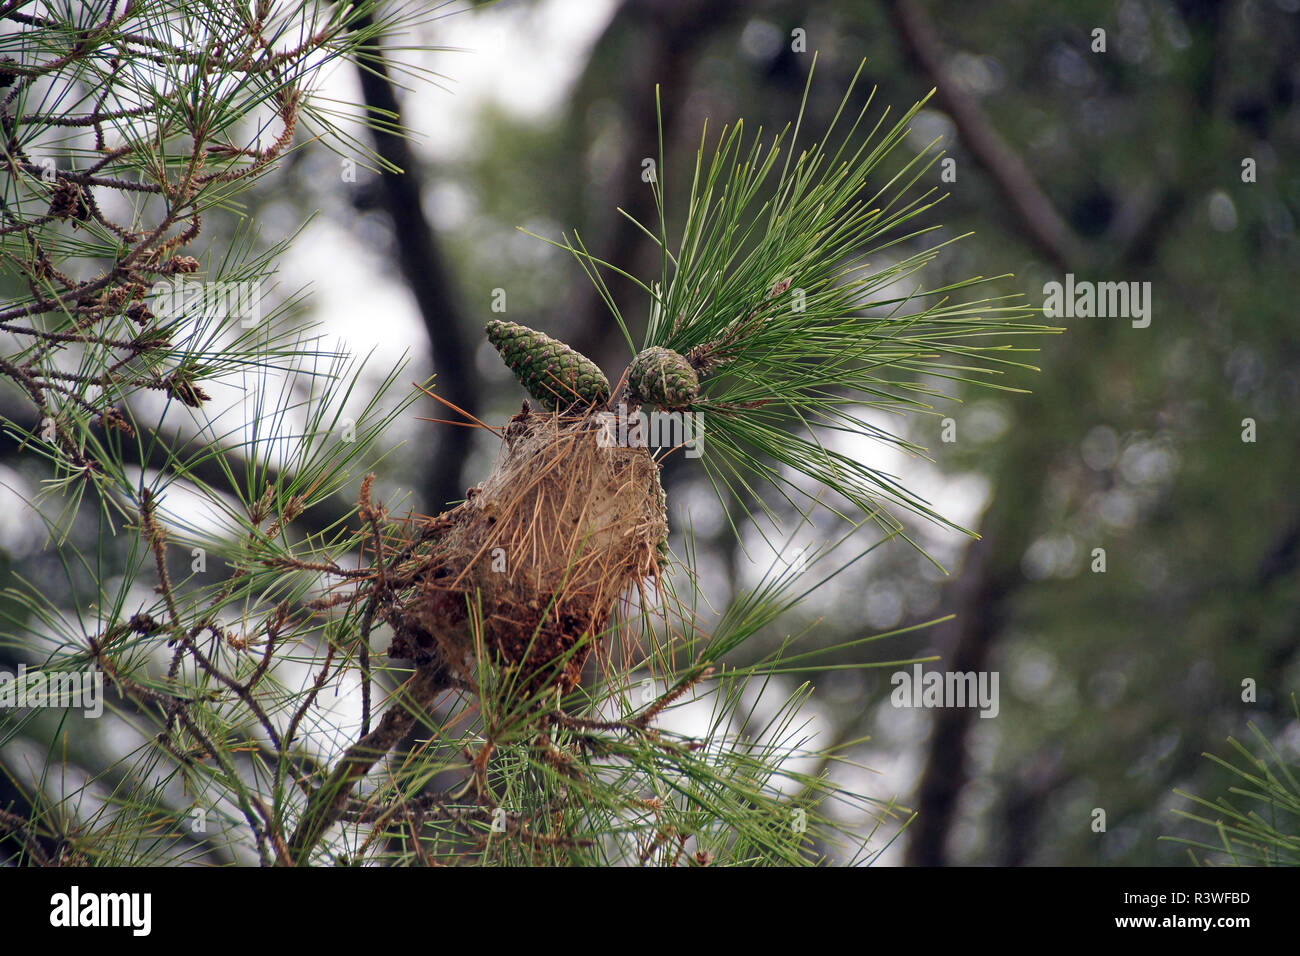 Pinecones and neddles in a tree on Crete - Stock Image